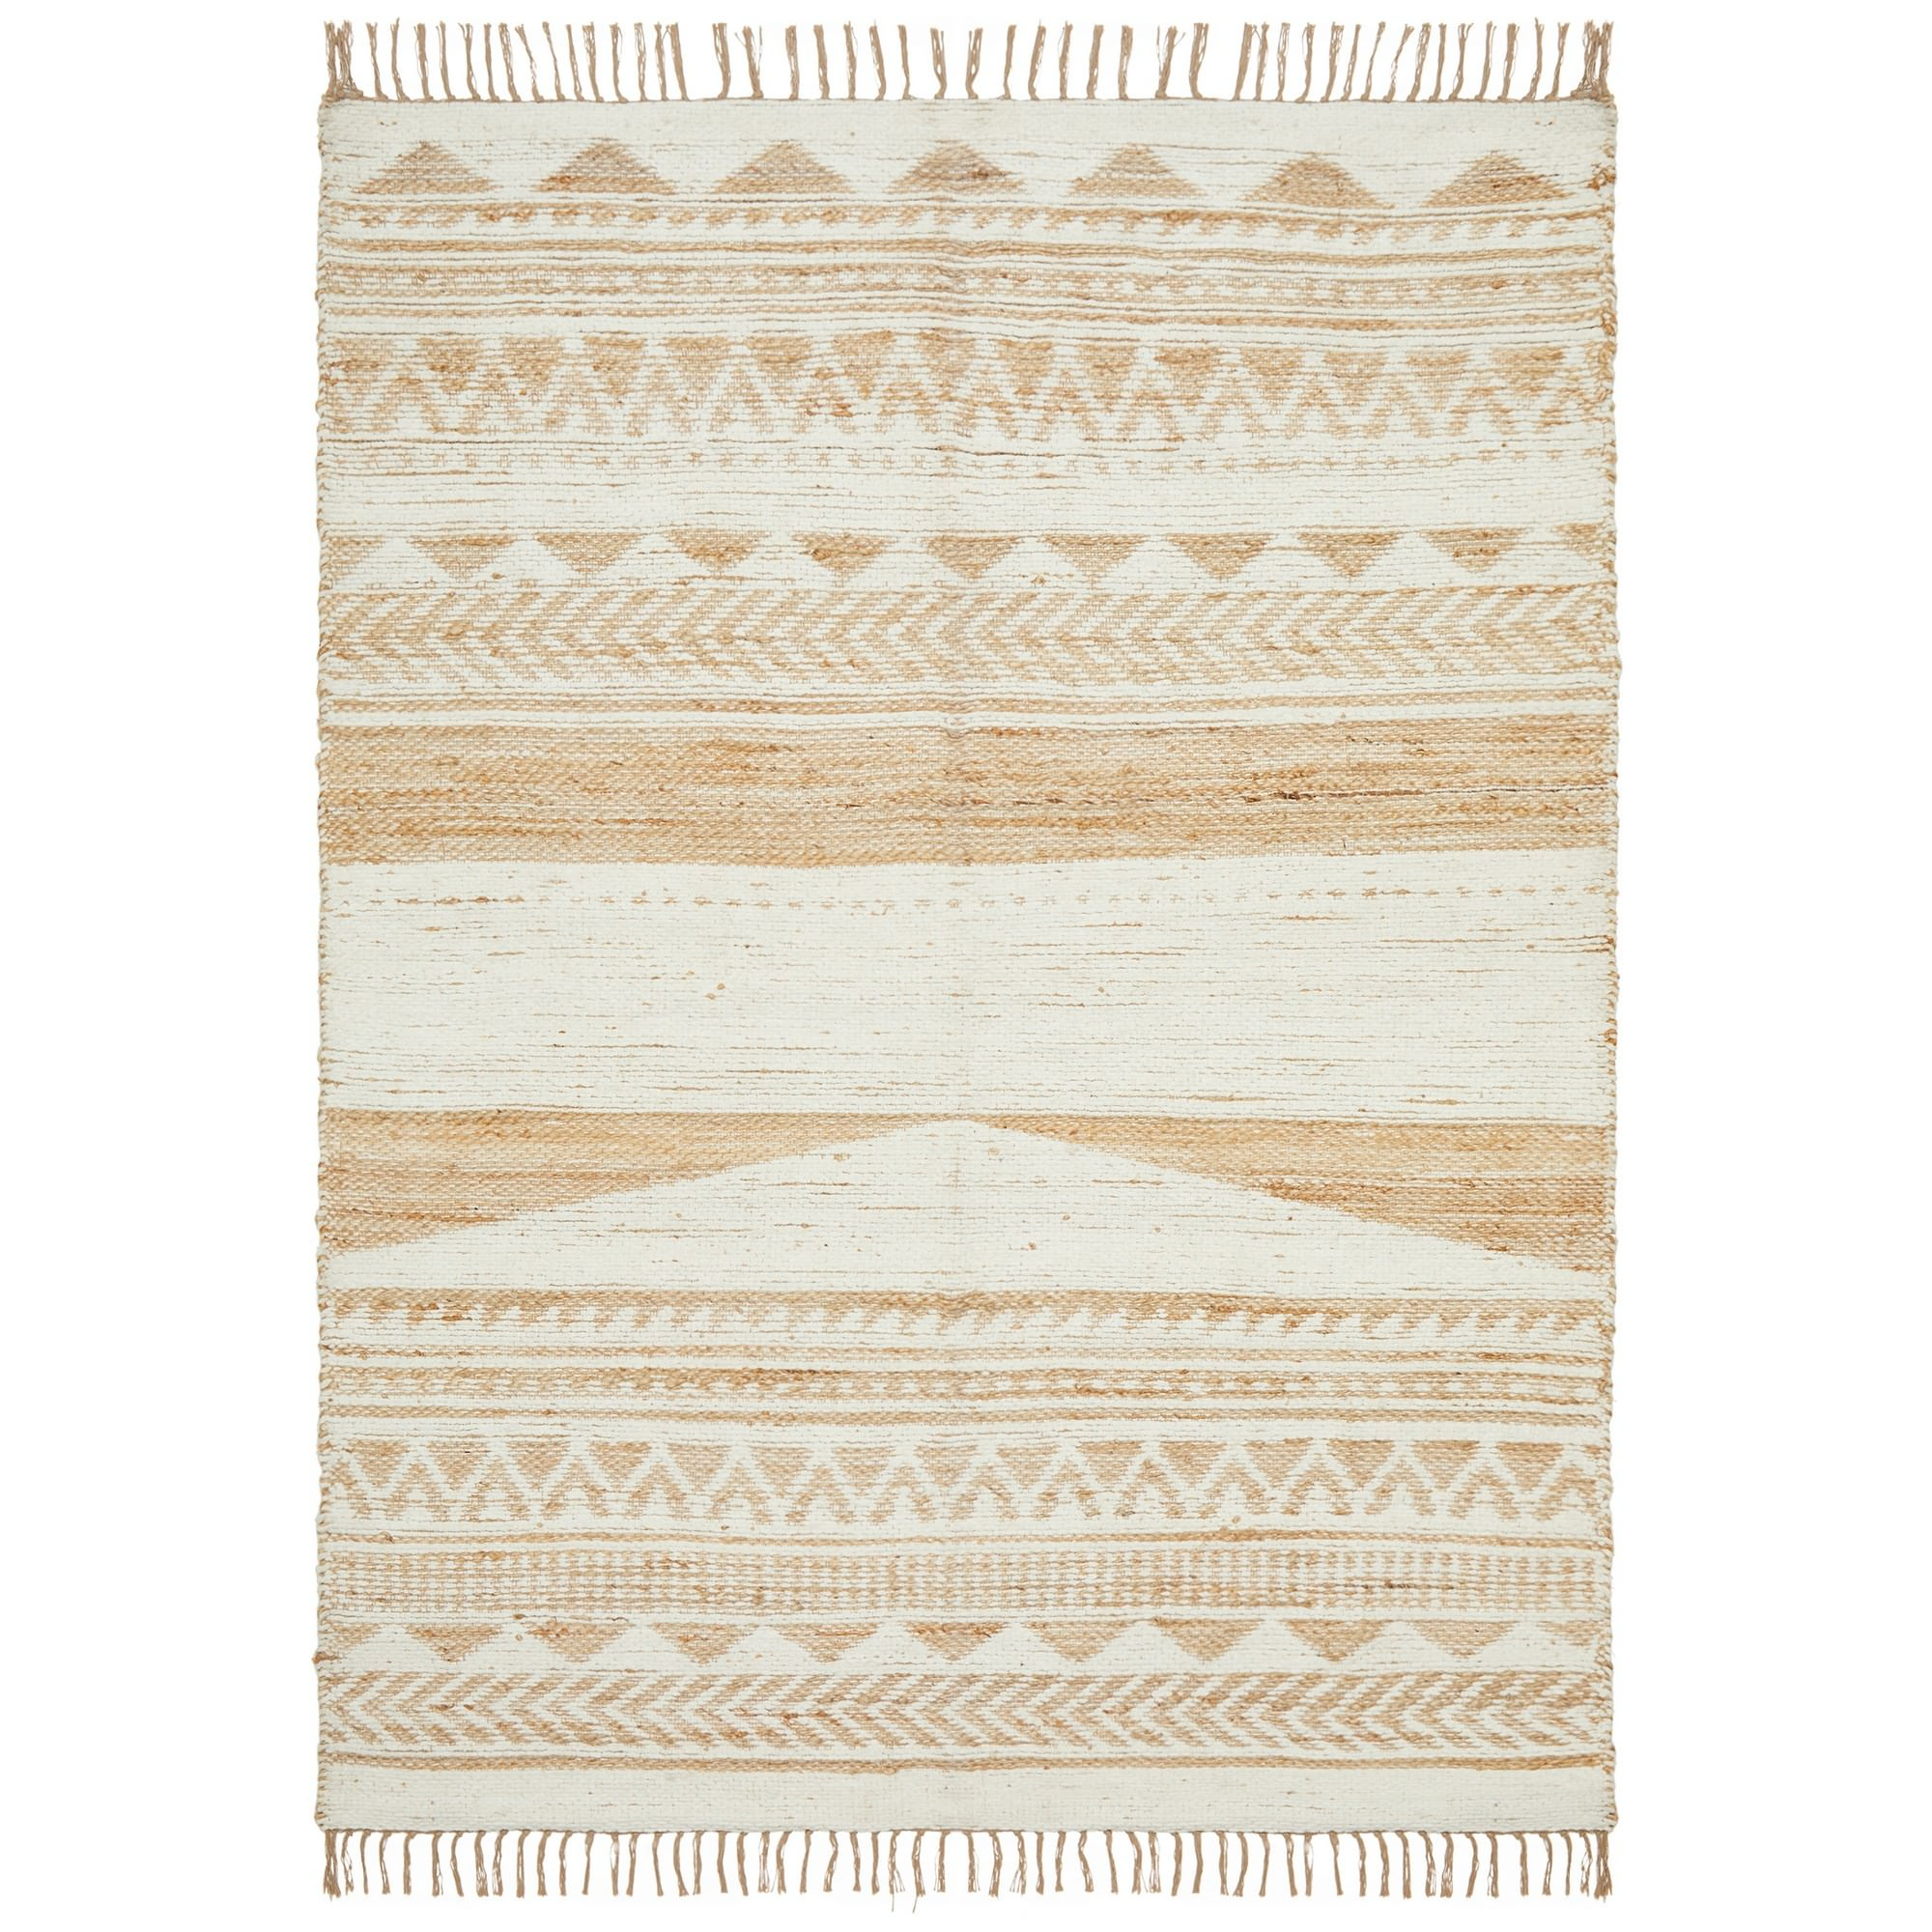 Parade Giselle Hand Loomed Jute & Cotton Chenille Rug, 150x220cm